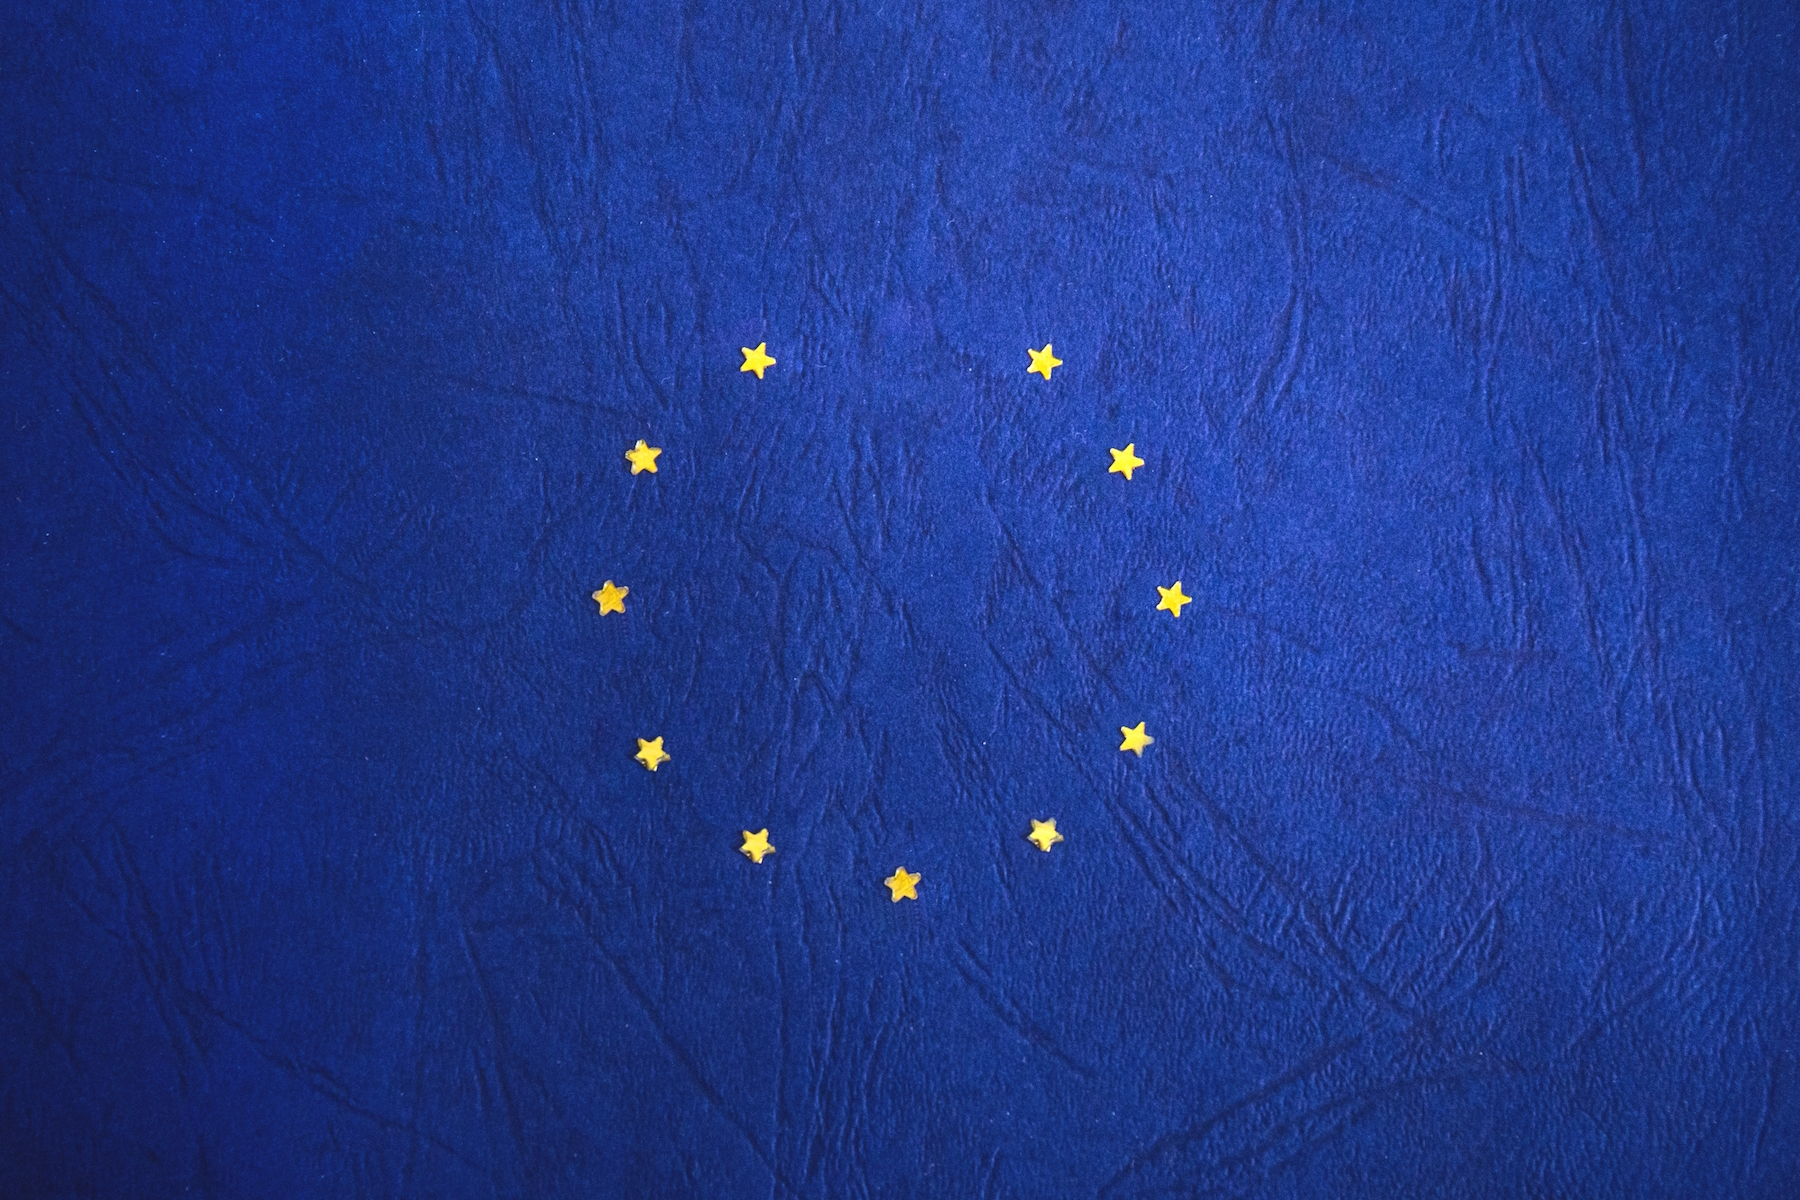 European flag with one star missing